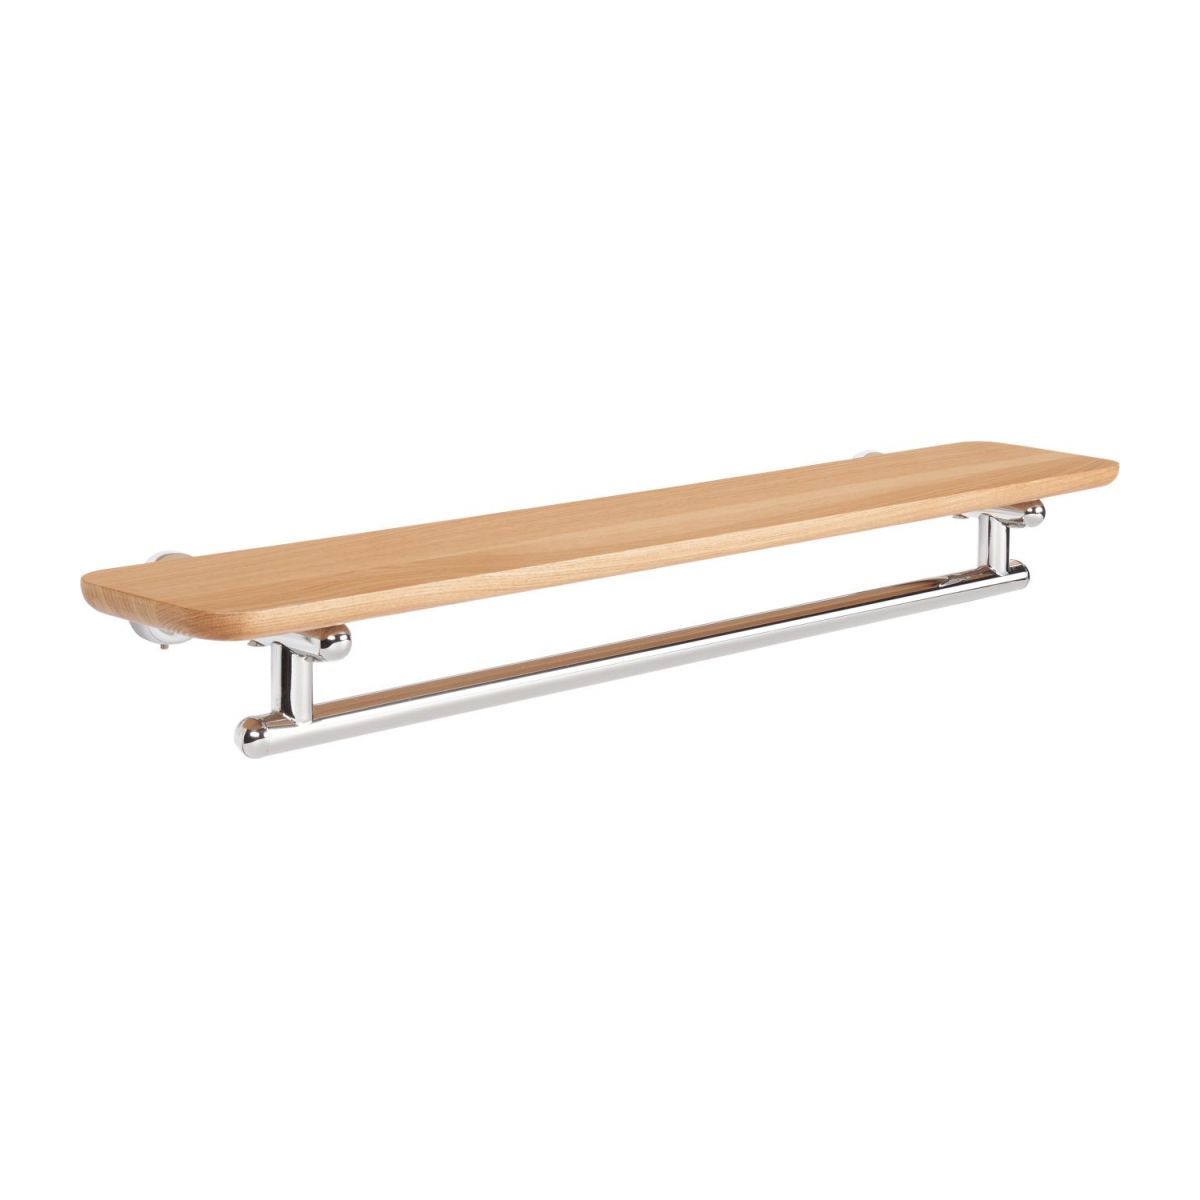 Towel holder shelf 70cm in beechwood and stainless steel n°1